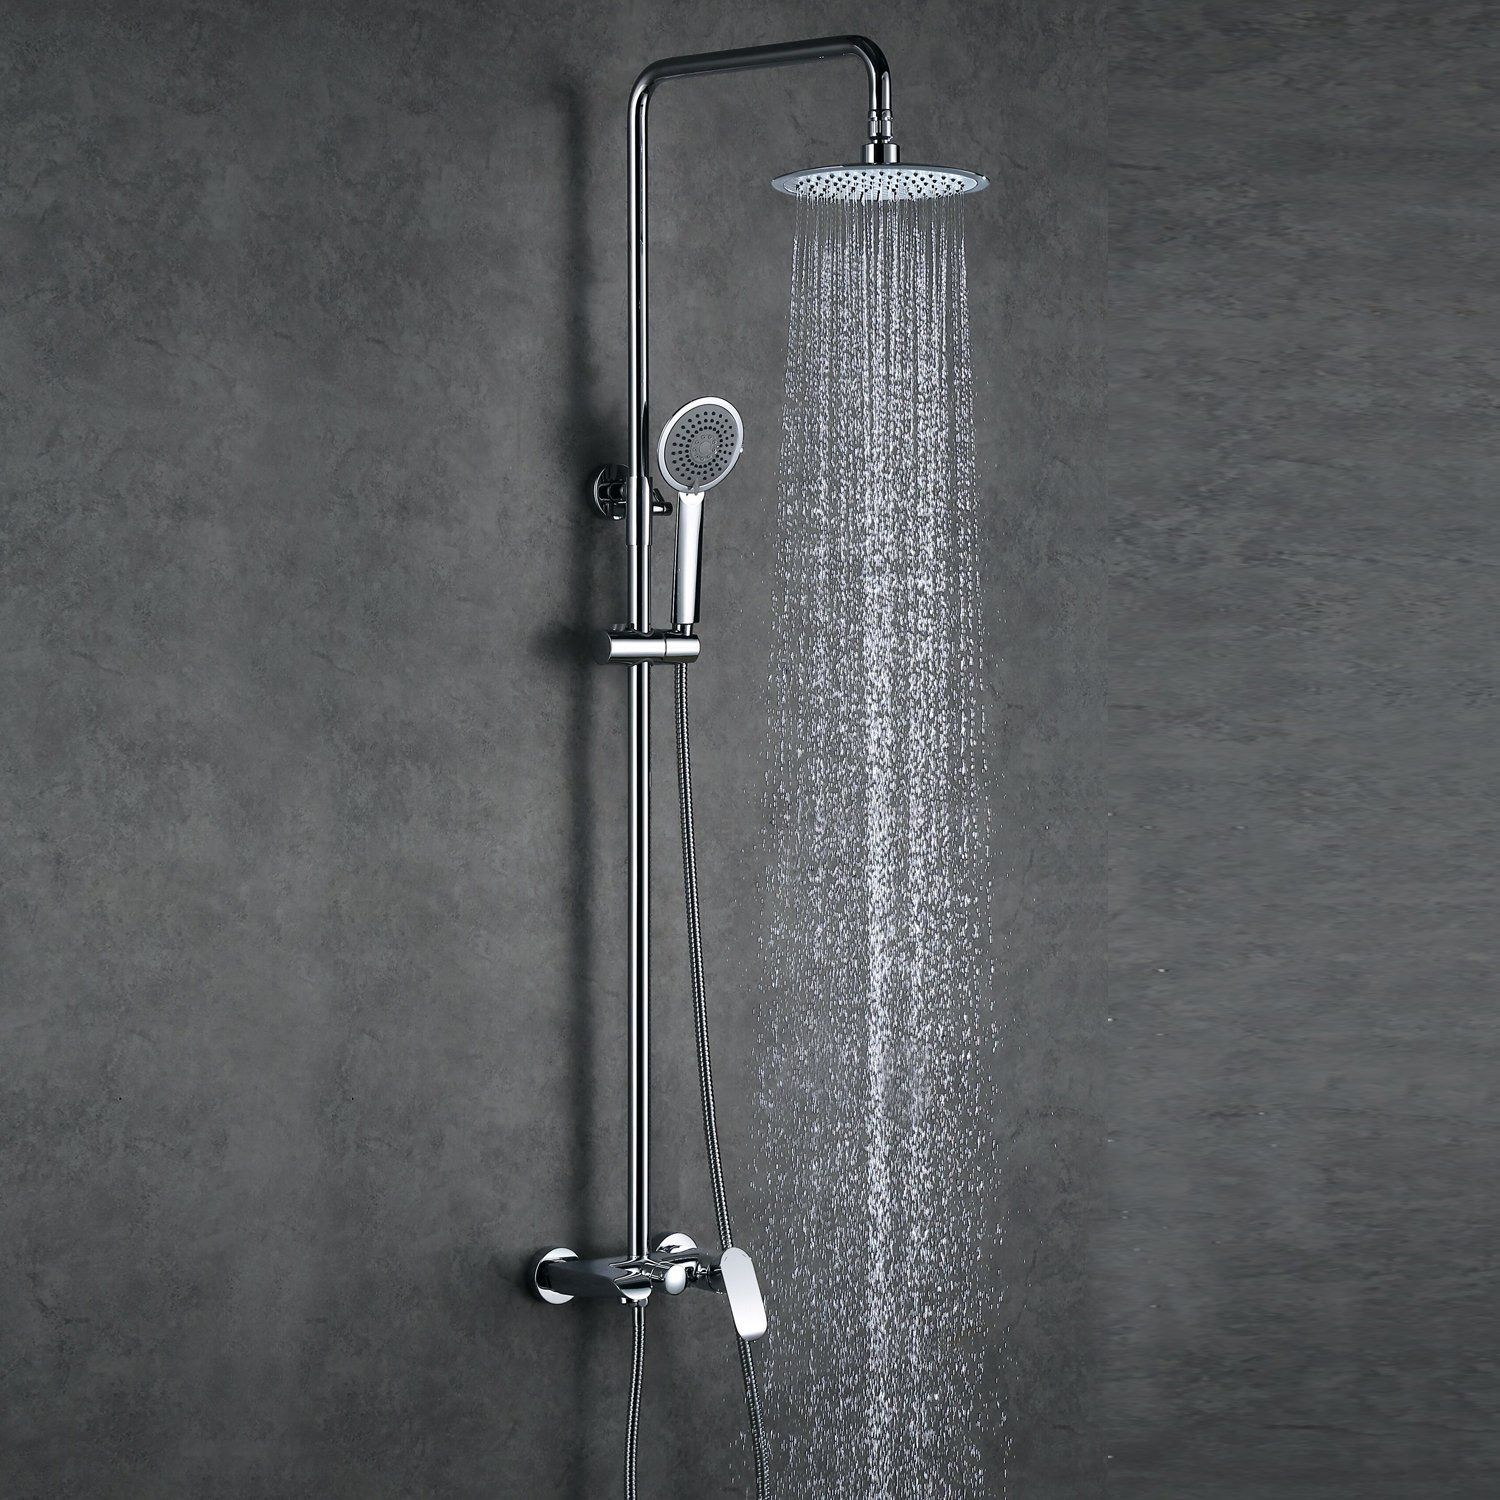 Rainfall Shower Head System Handheld With Images Shower Heads